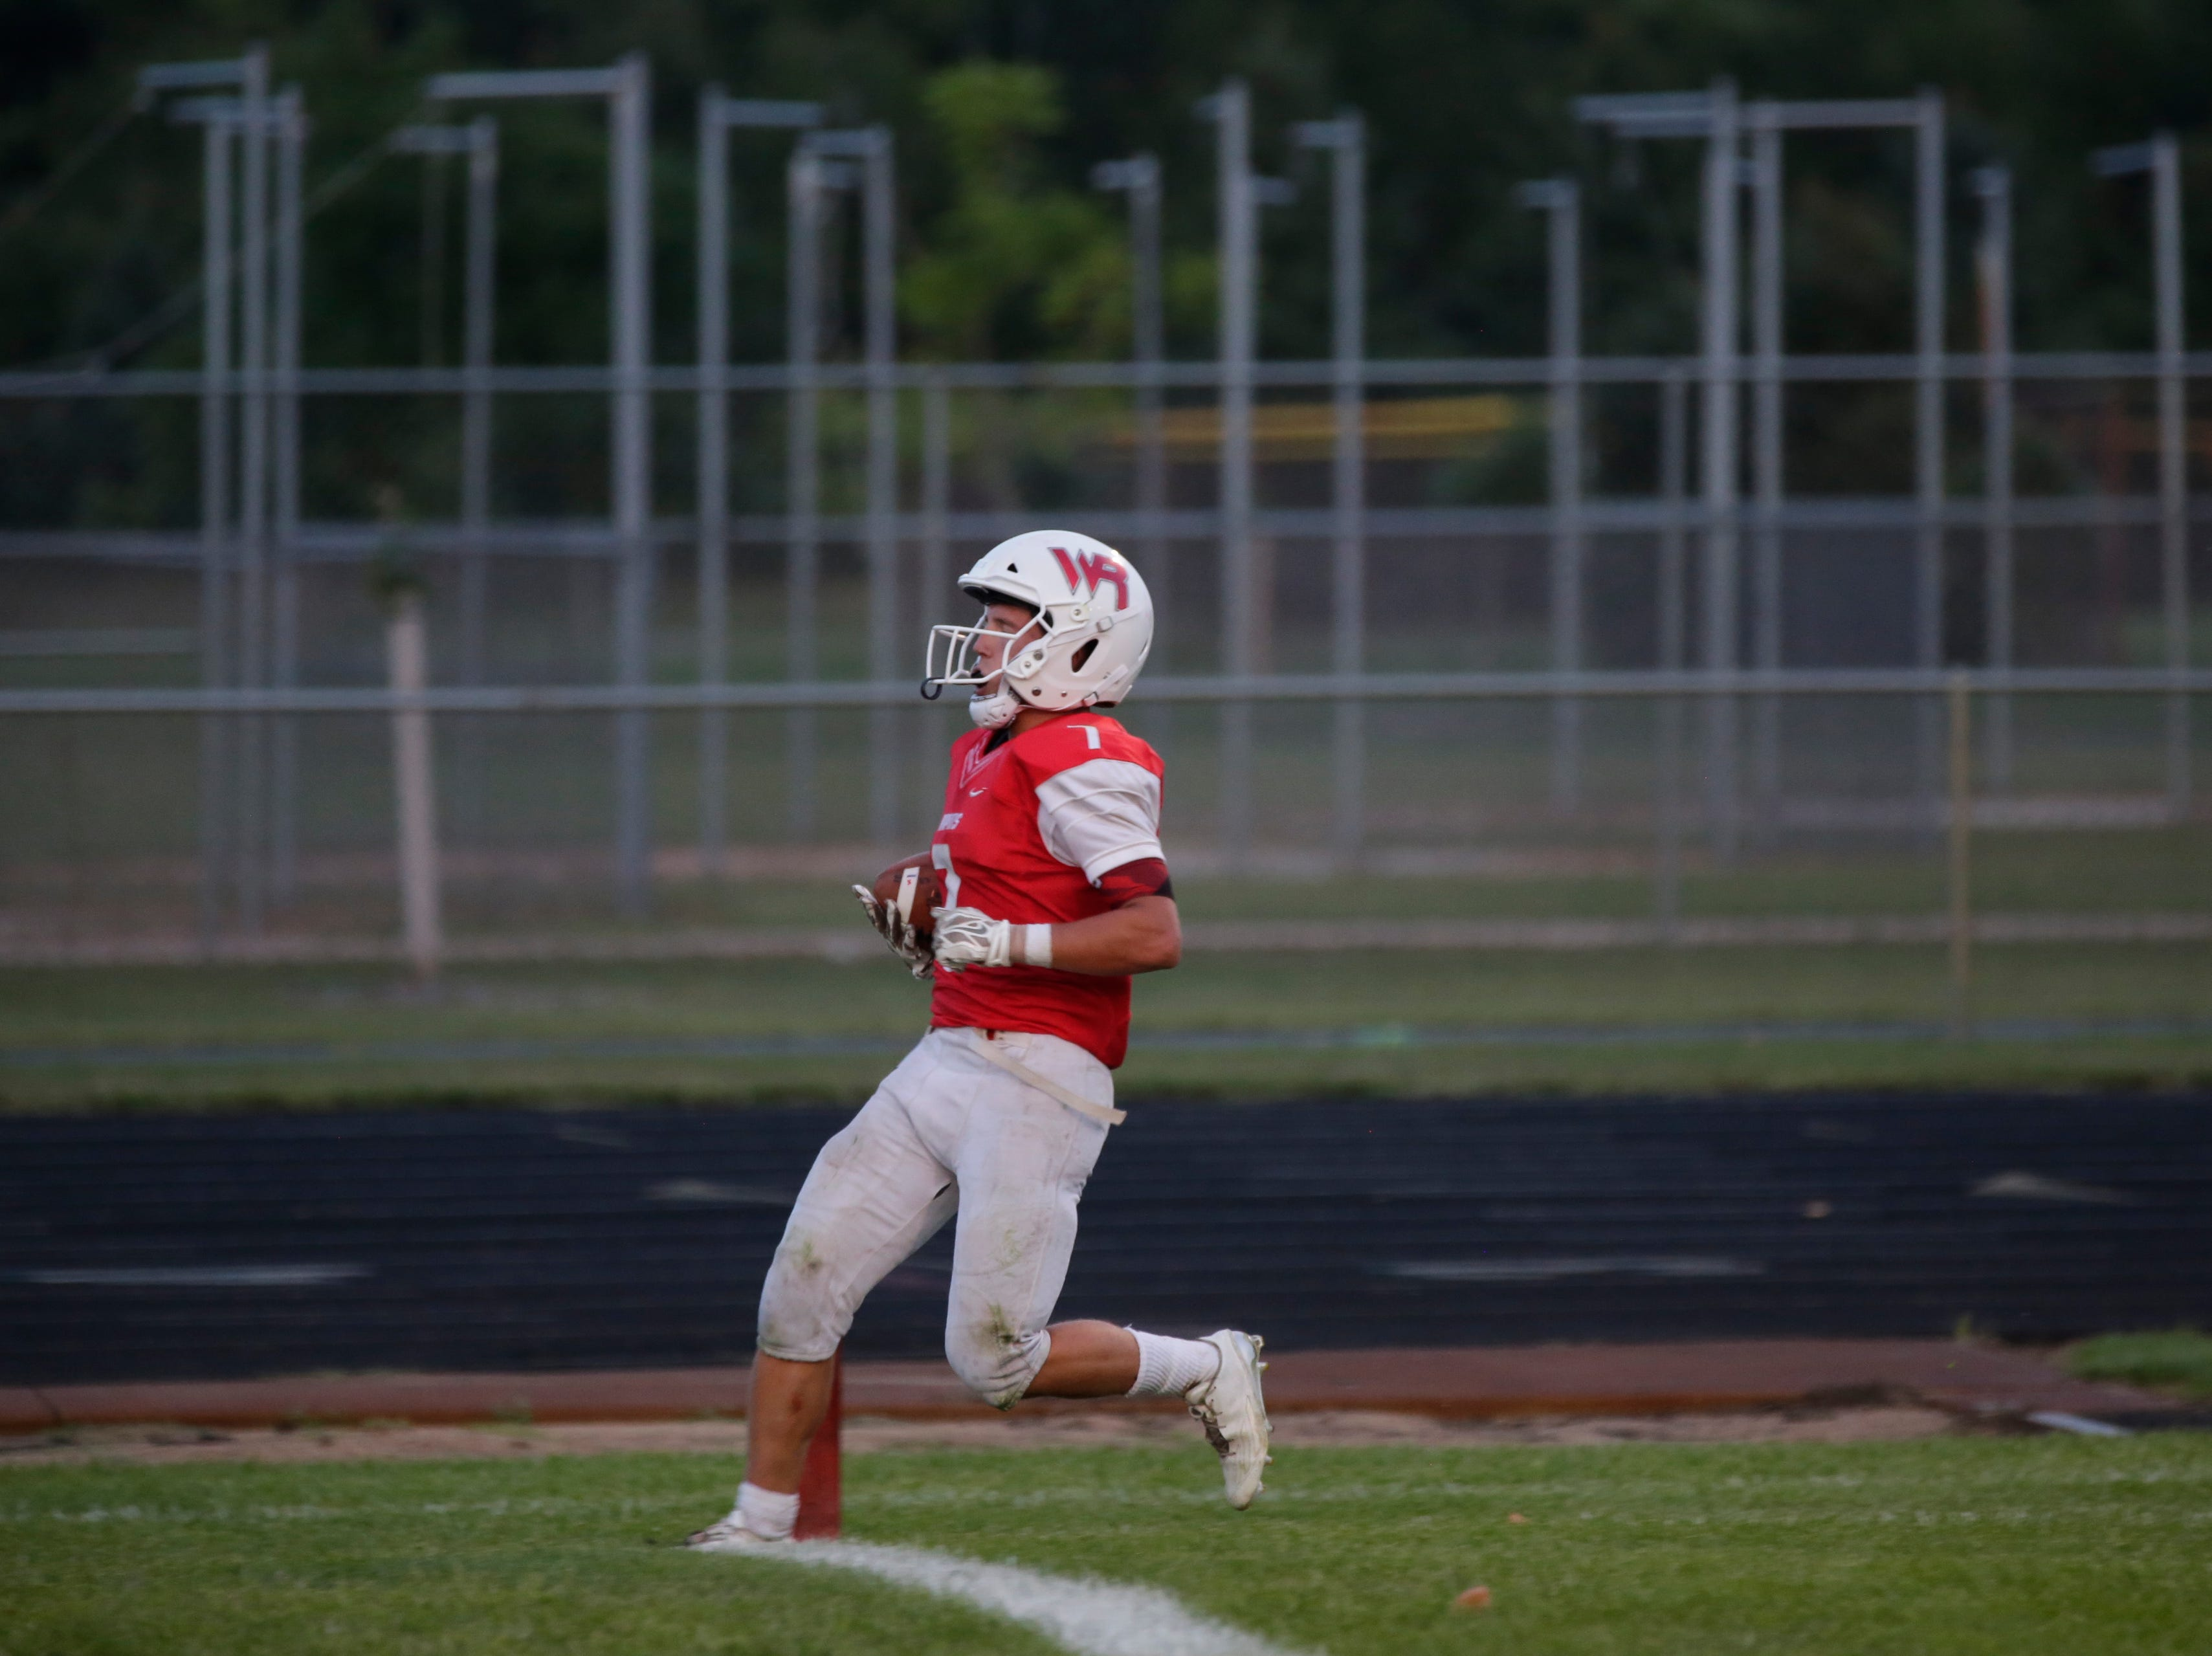 Wisconsin Rapids' Nash Coombs (7) scores a touchdown that was overturned by a penalty during a game between Wisconsin Rapids and Kimberly at Wisconsin Rapids Lincoln High School Thursday, August 23, 2018.